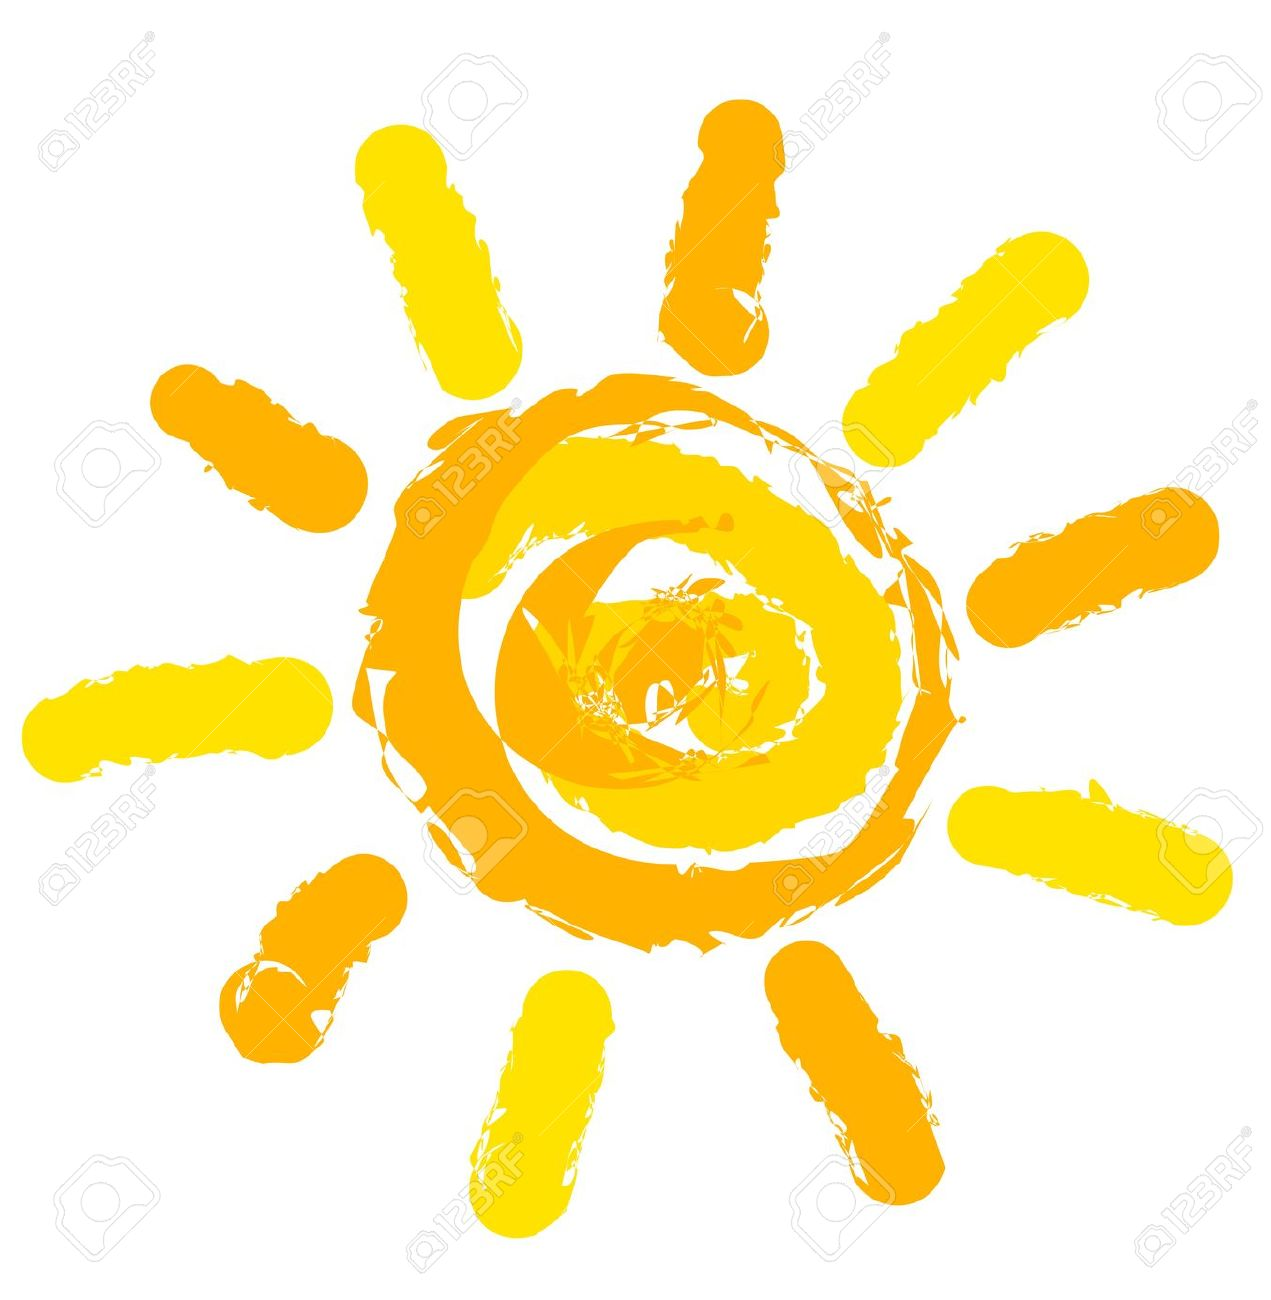 Sun Symbol Illustration Royalty Free Cliparts, Vectors, And Stock.